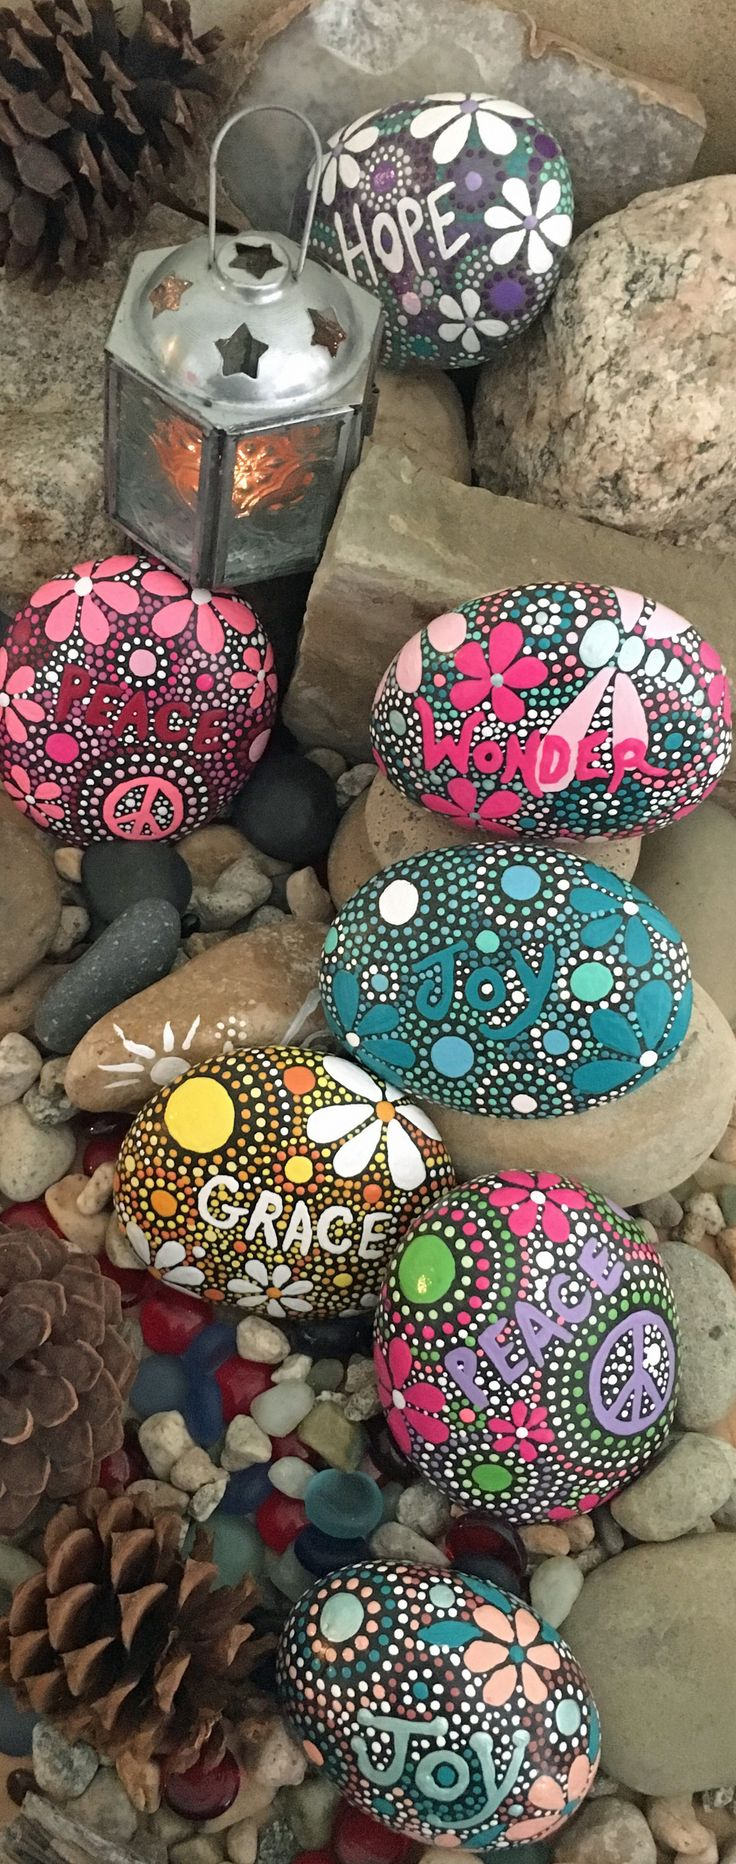 Painted Rocks, Hand Painted Stones, Rock Art Say it with Rocks! Rock Art Word Rocks from ethereal & earth - otherworldly & of this world creations! SHOP NOW and get FREE USA Shipping!